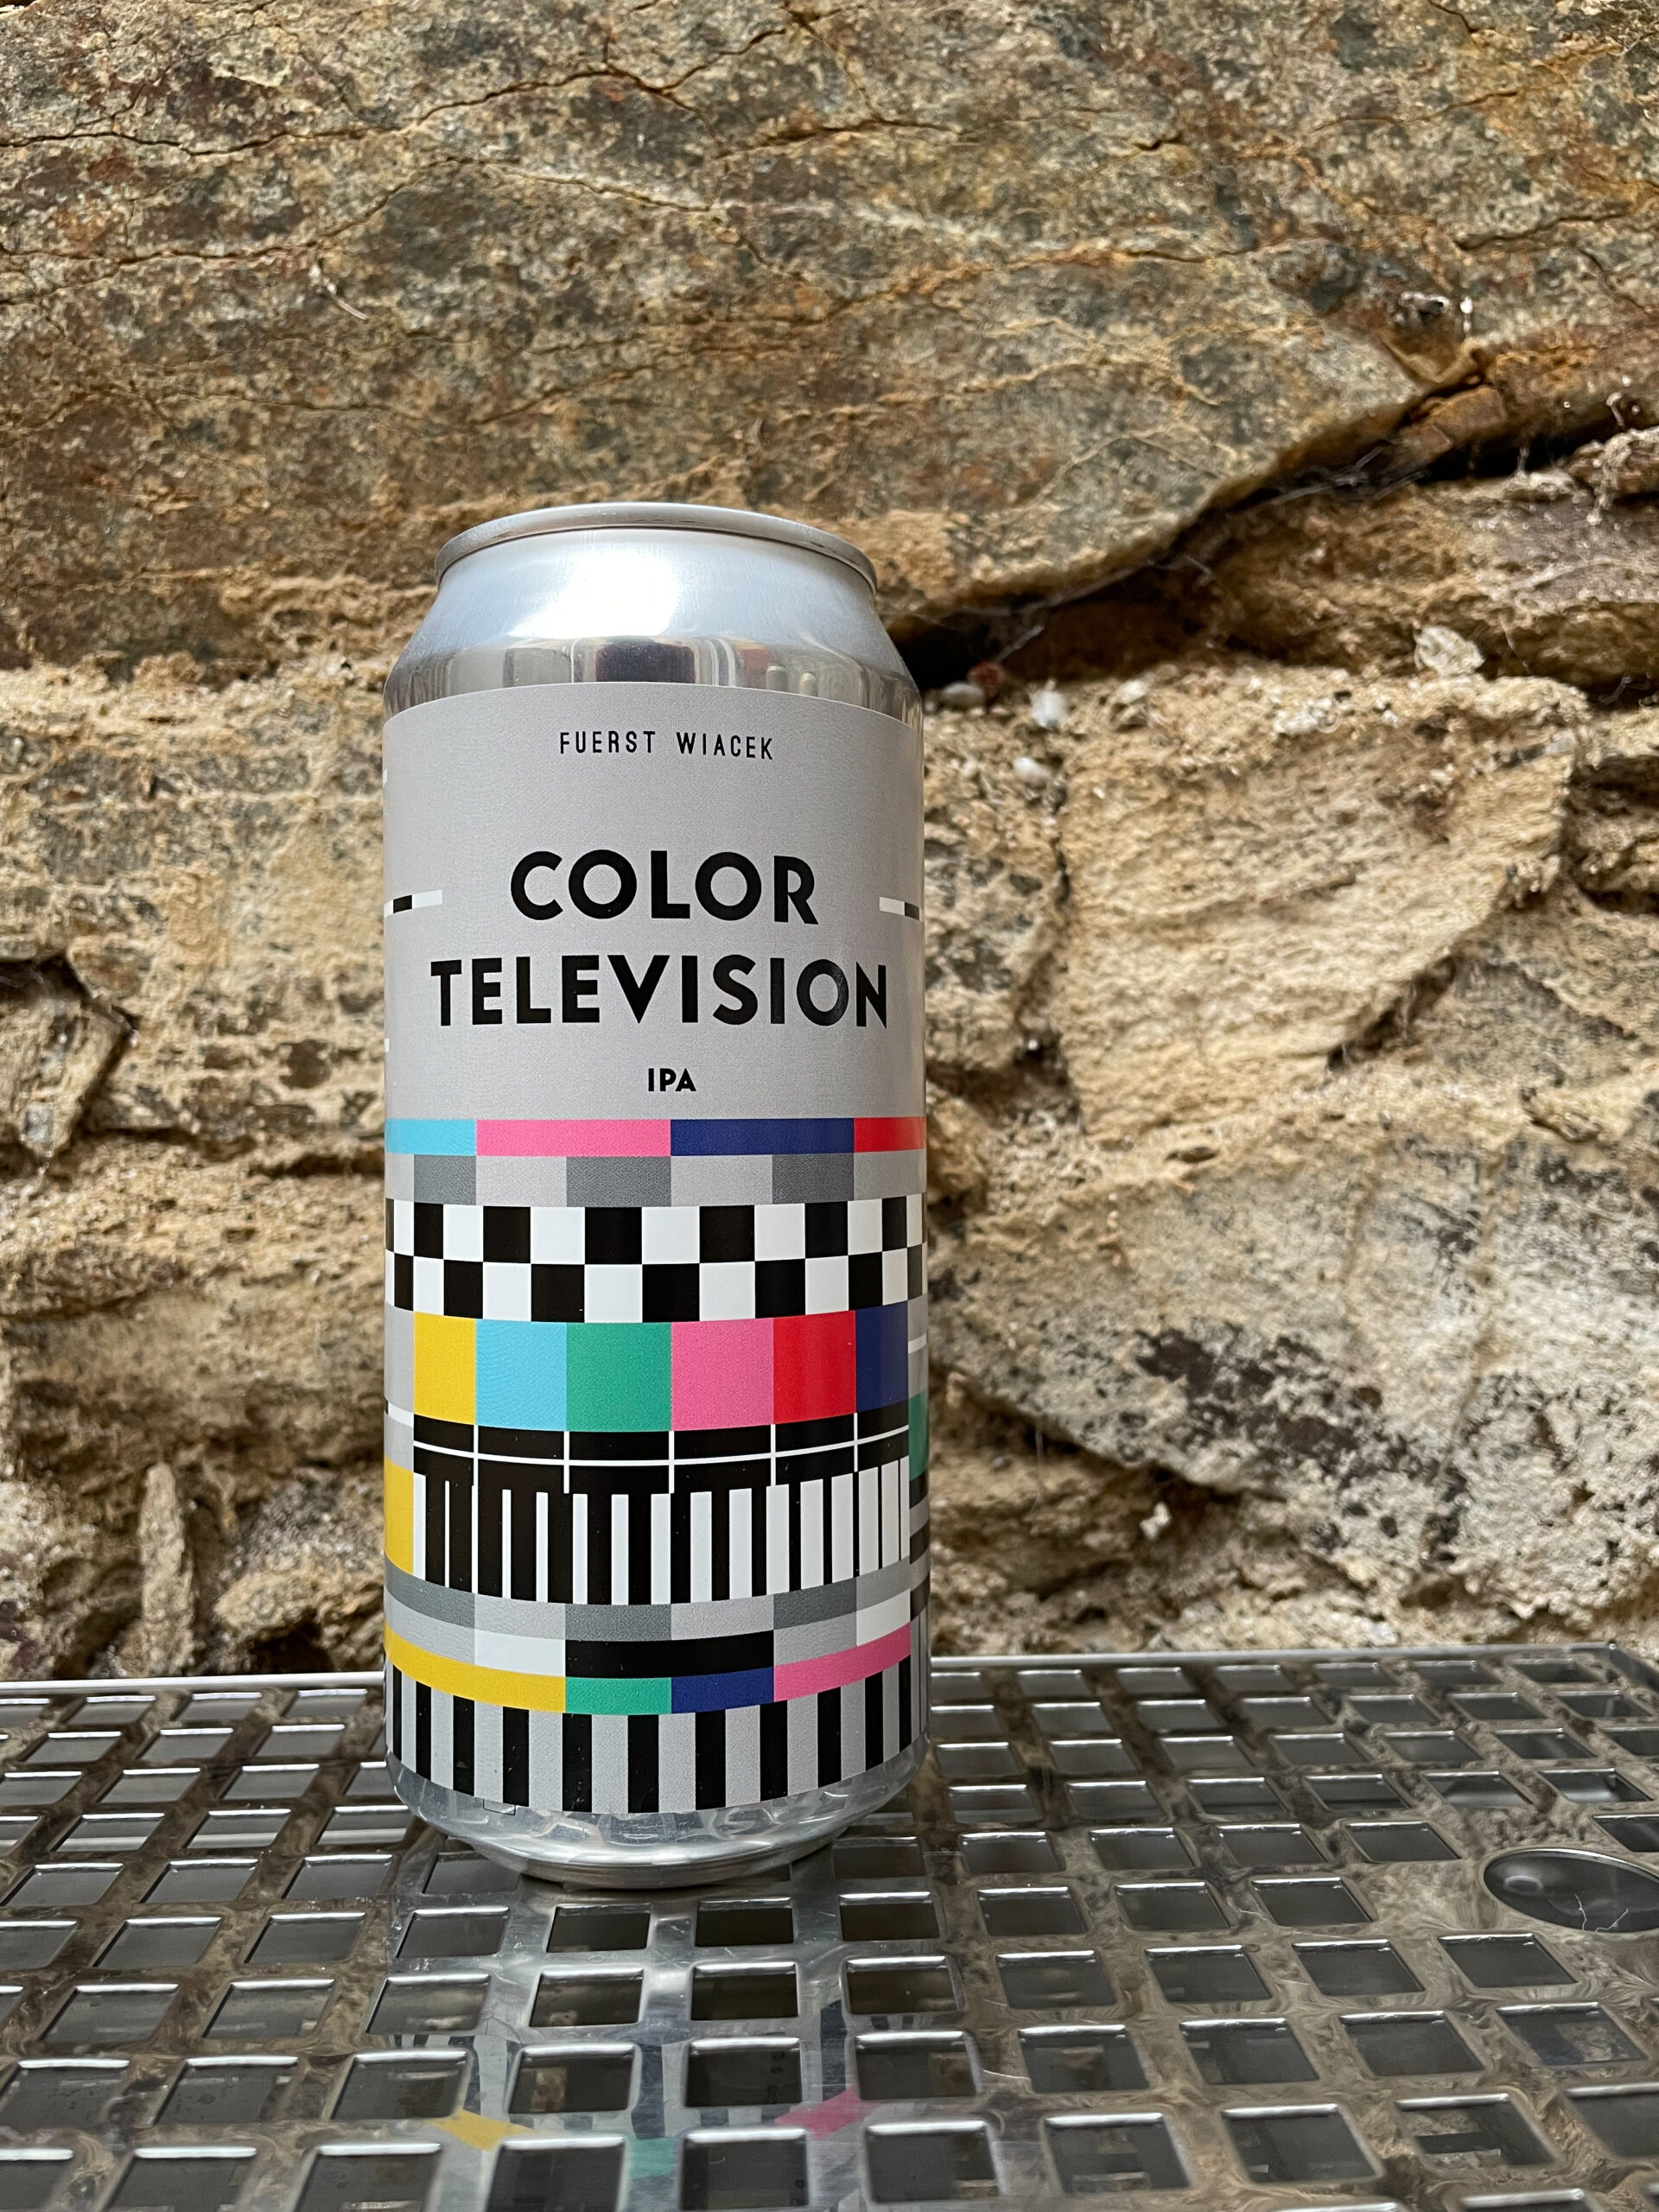 Fuerst Wiacek – Color Television